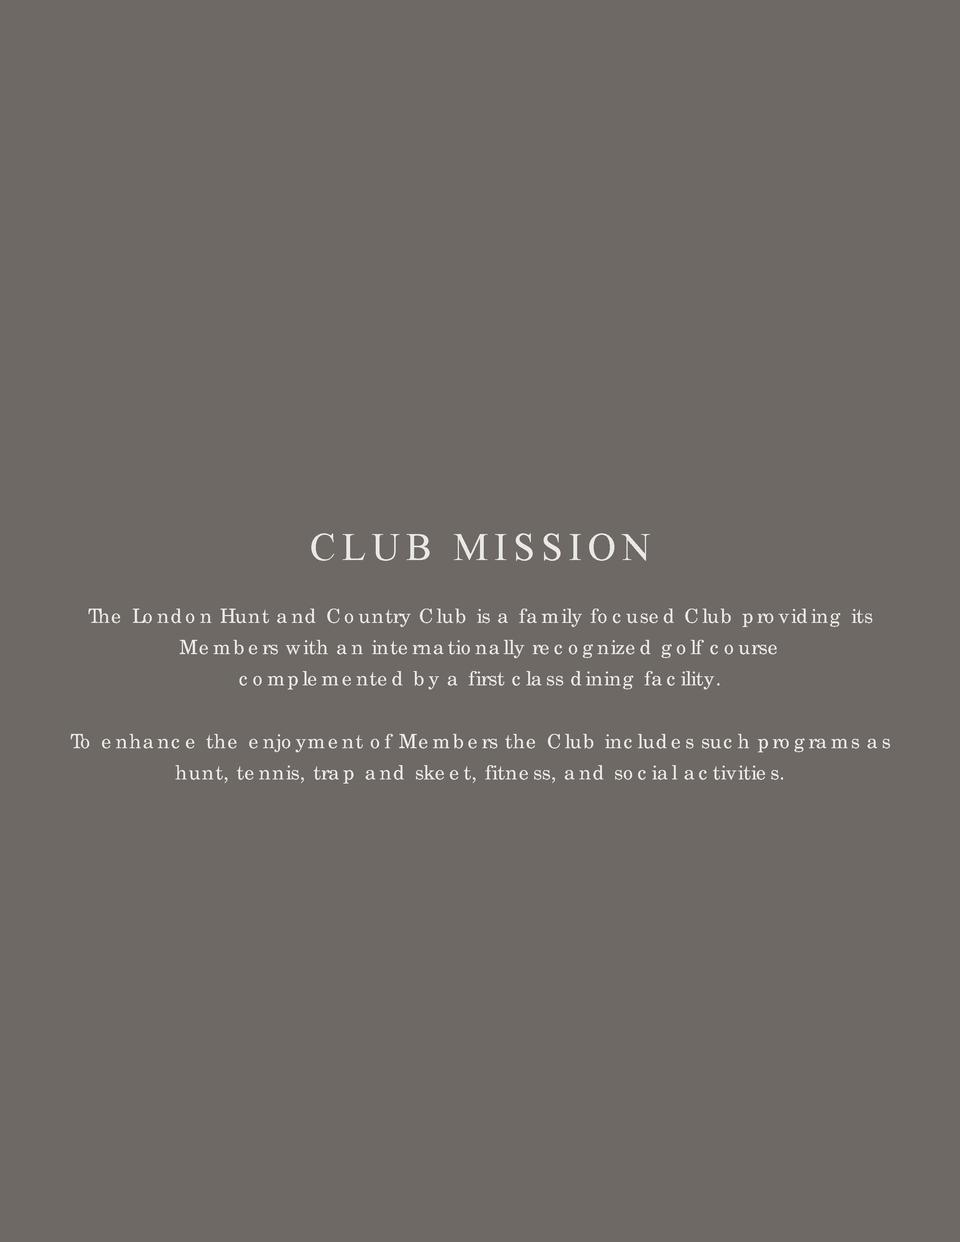 CLUB MISSION The London Hunt and Country Club is a family focused Club providing its Members with an internationally recog...